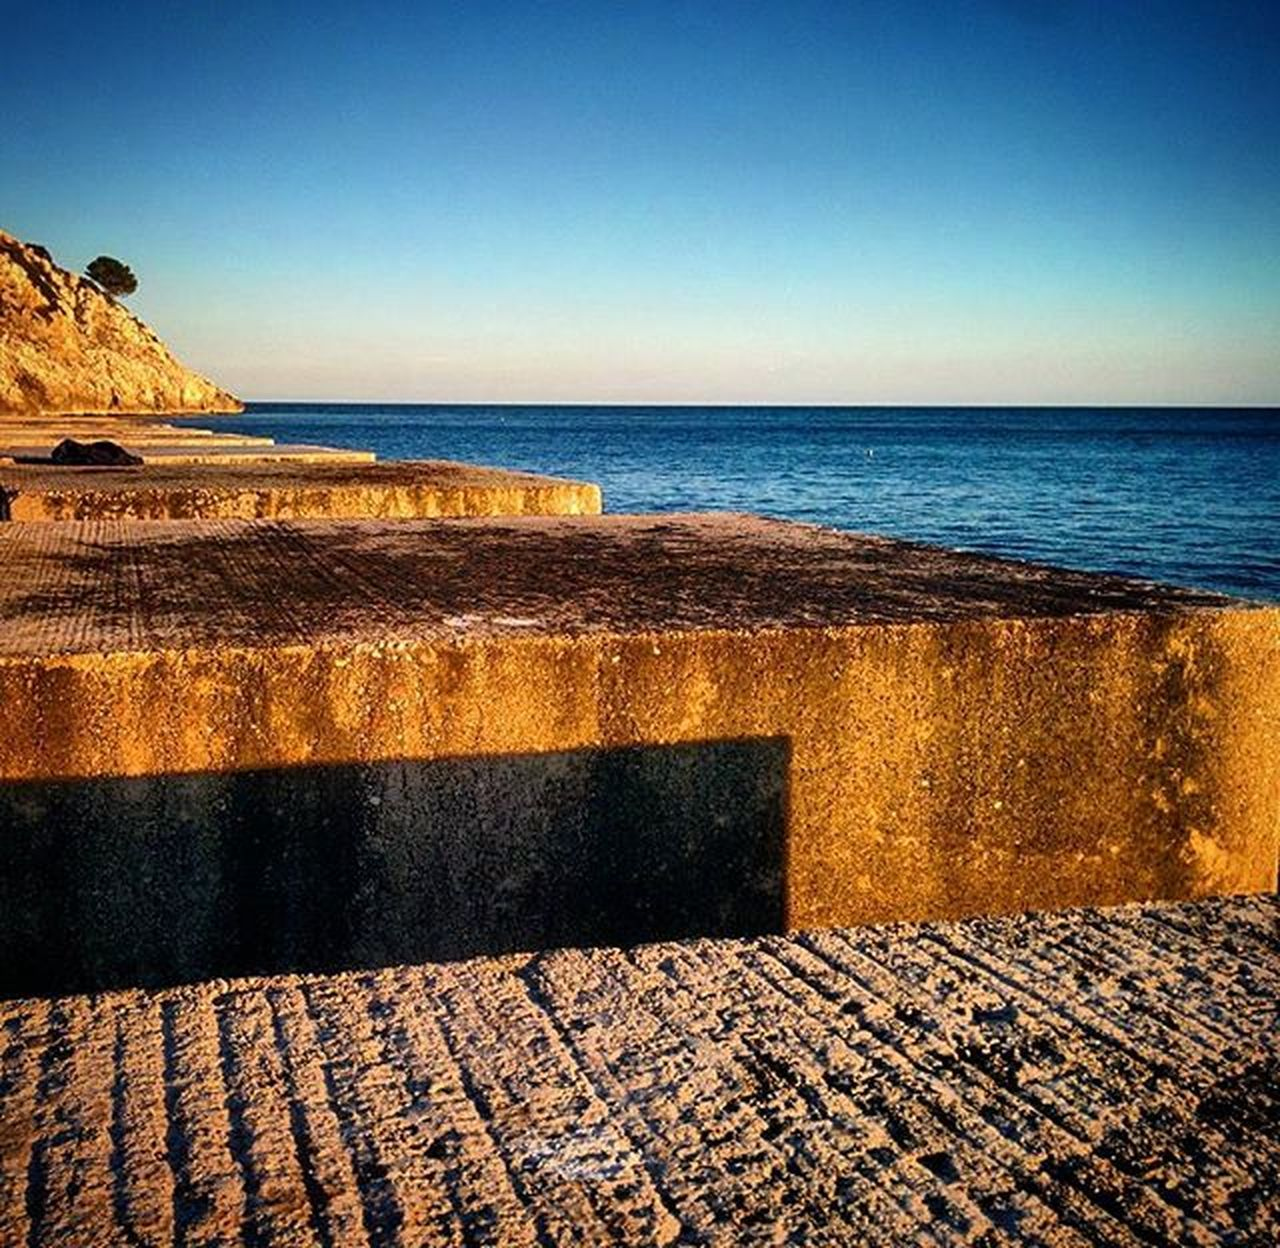 sea, horizon over water, water, beach, scenics, history, rock - object, nature, outdoors, travel destinations, no people, beauty in nature, tranquility, sky, day, vacations, sand, groyne, clear sky, wave